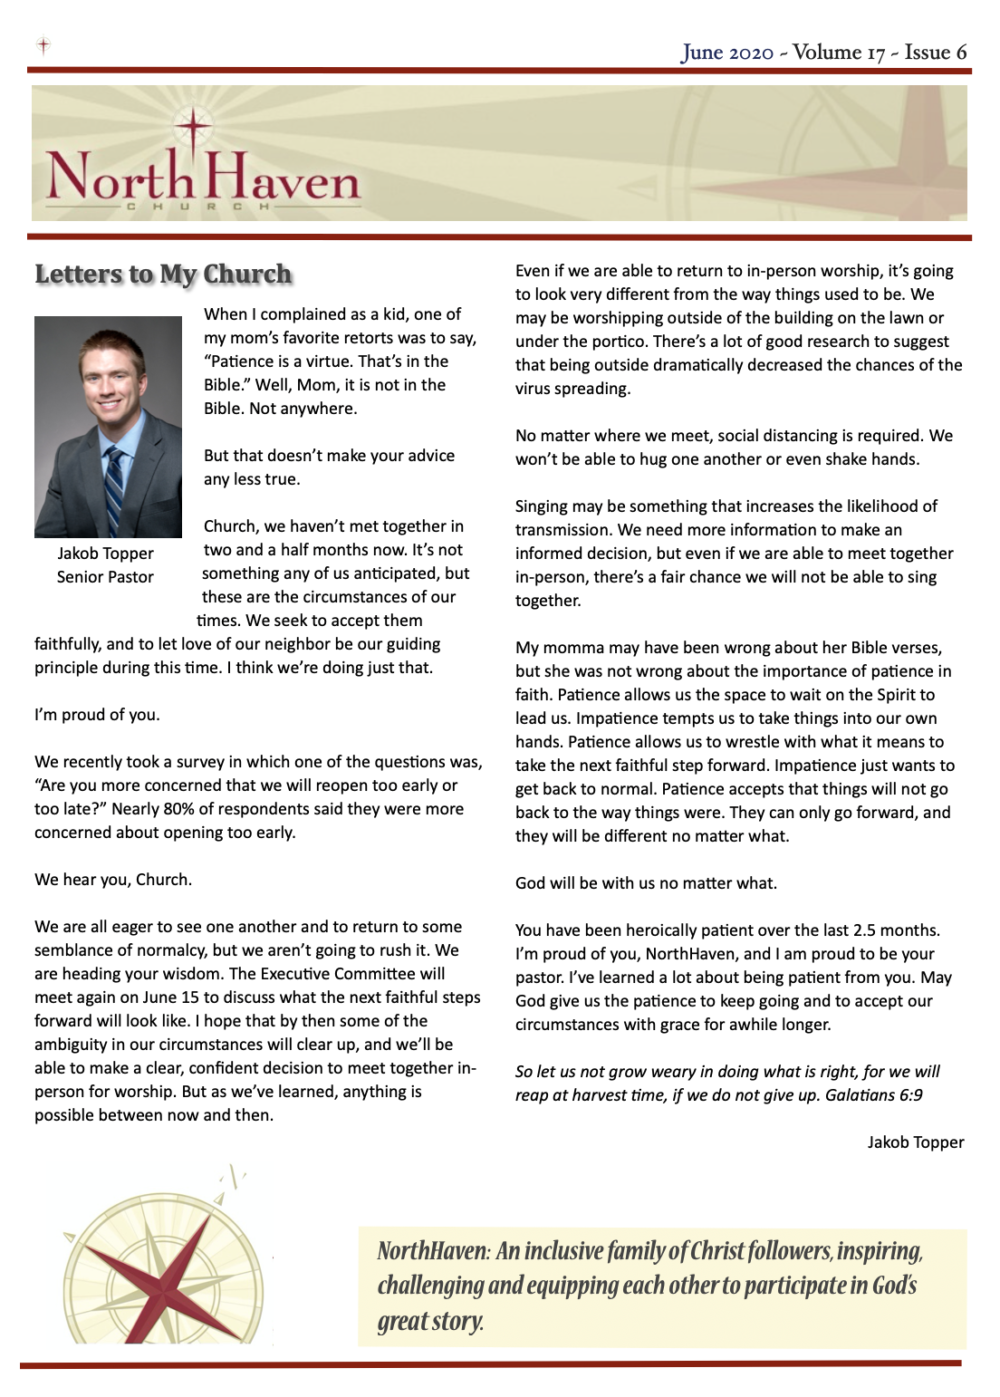 June 2020 Newsletter